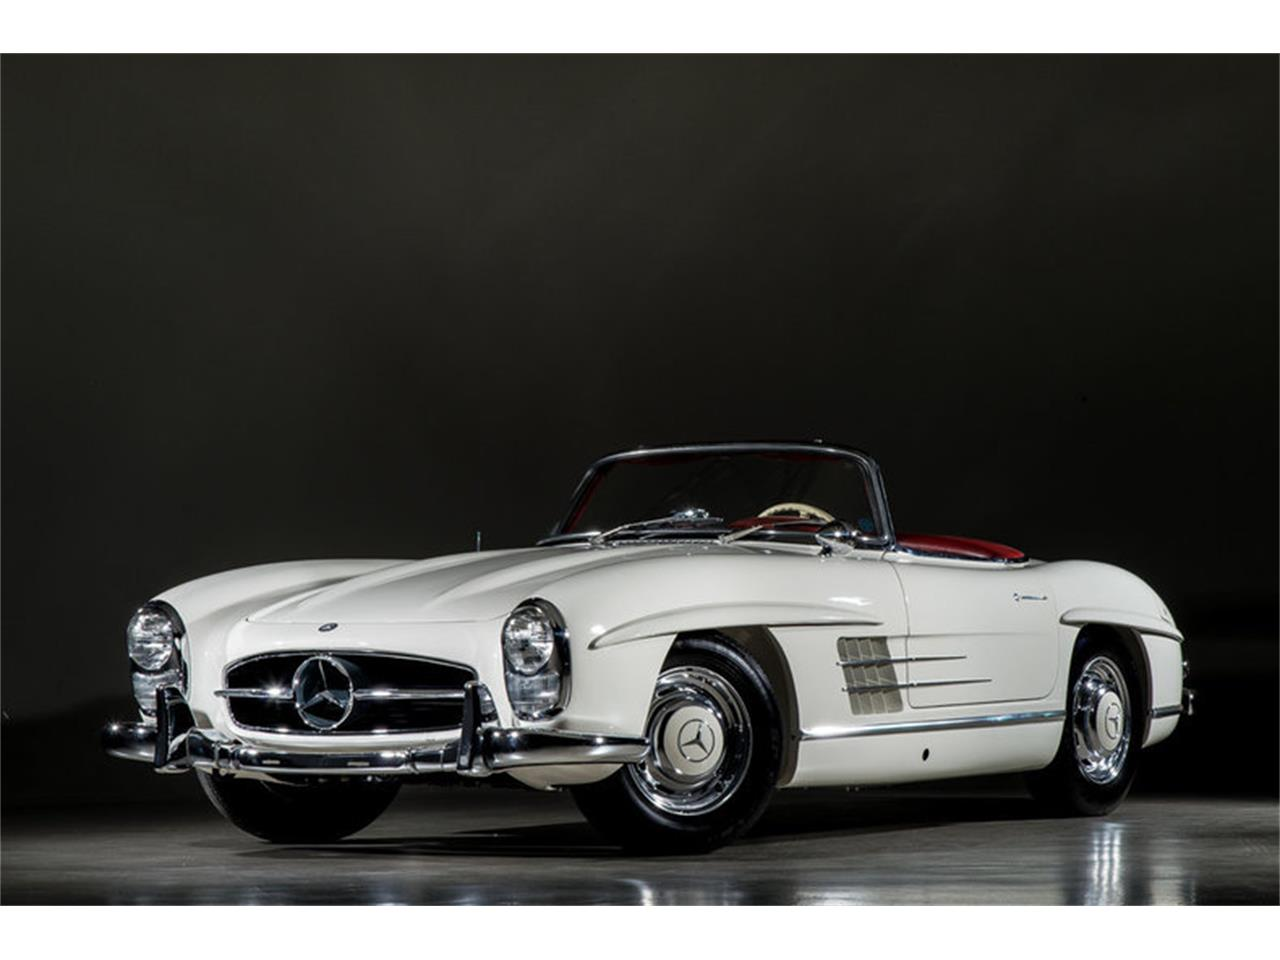 Large Picture of 1963 Mercedes-Benz 300SL Roadster Auction Vehicle Offered by Canepa - EFPZ